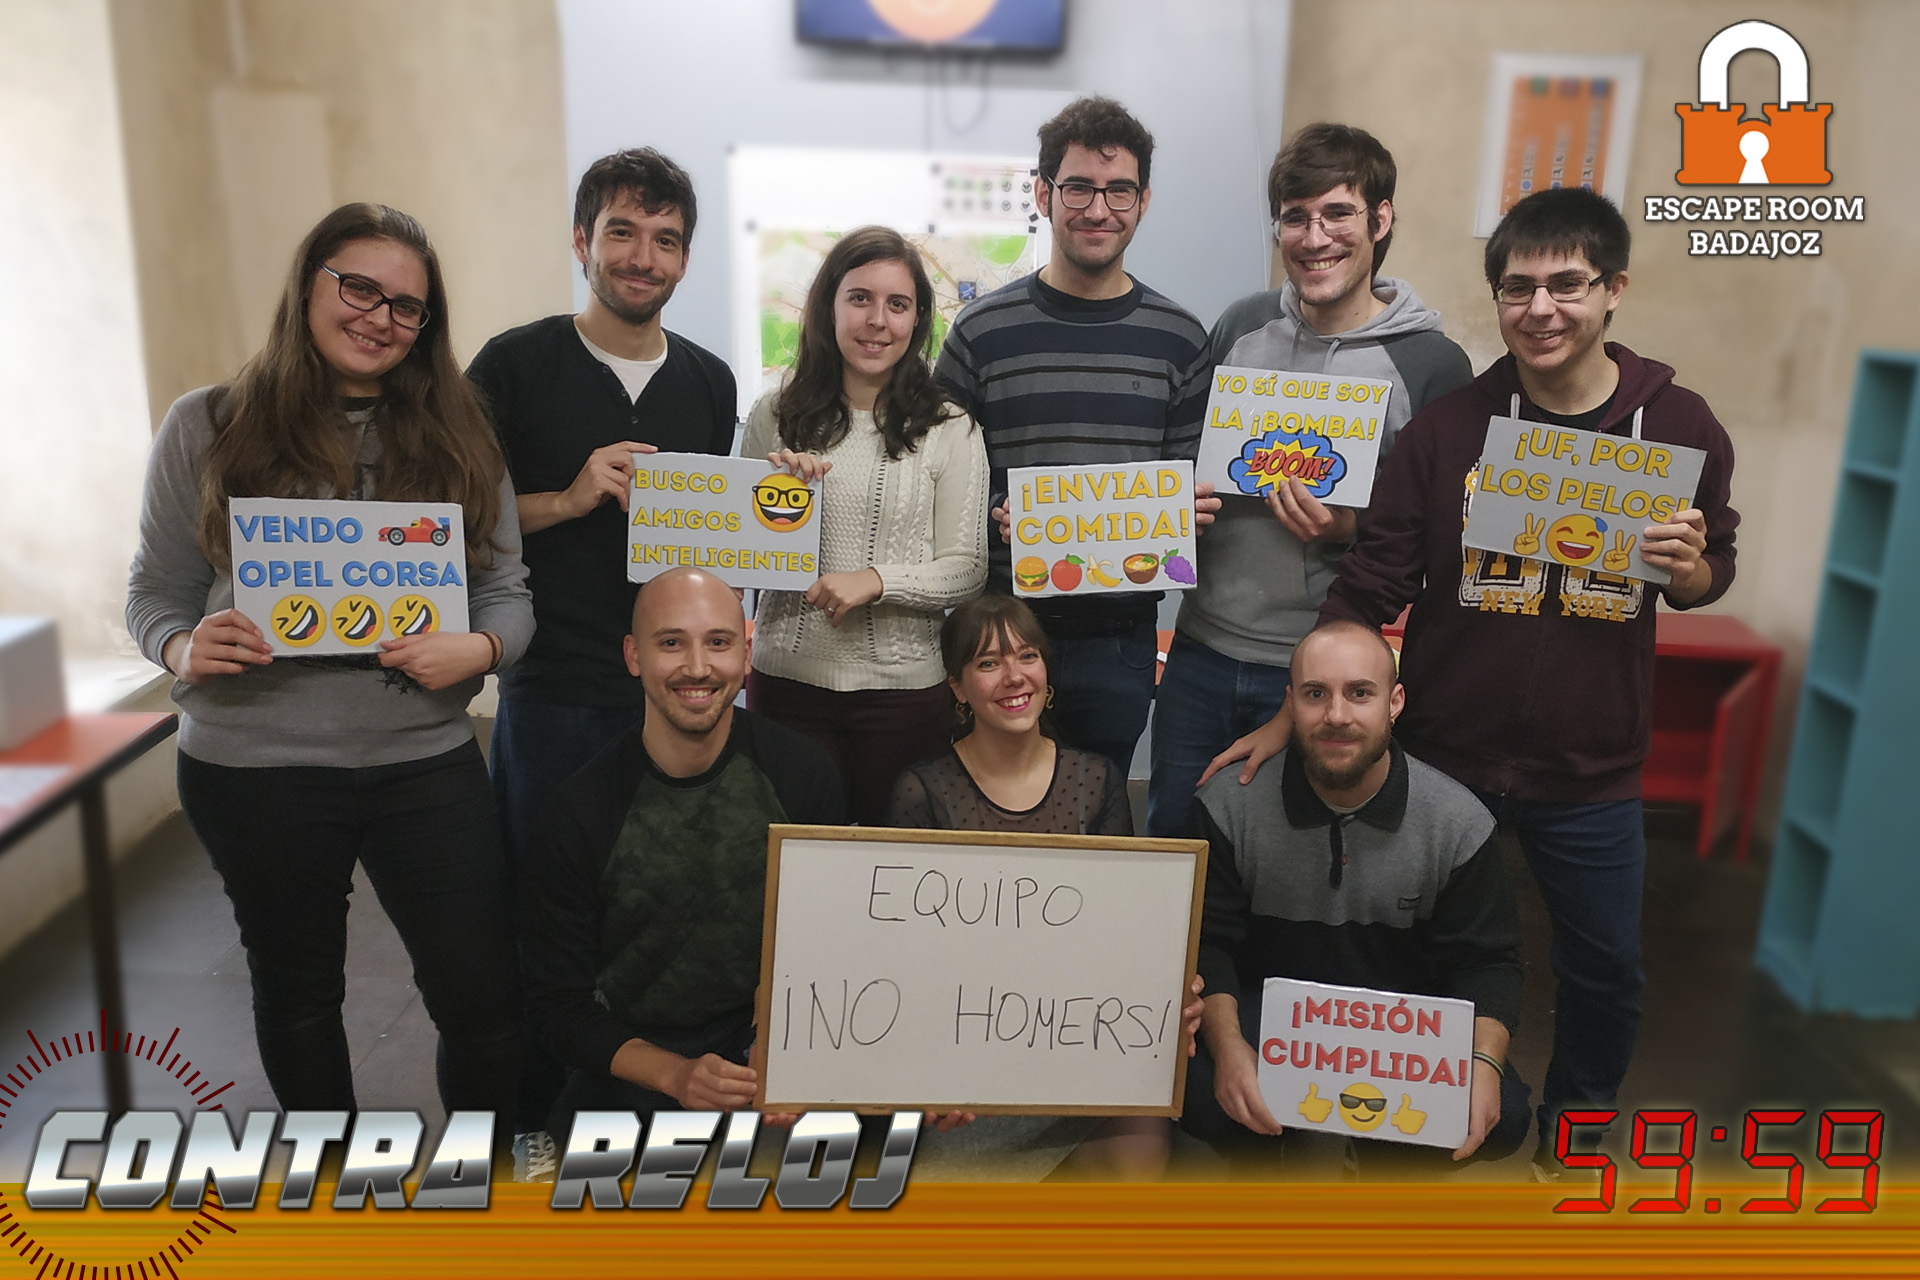 Equipo-No-Homers-escape-room-badajoz-contrareloj